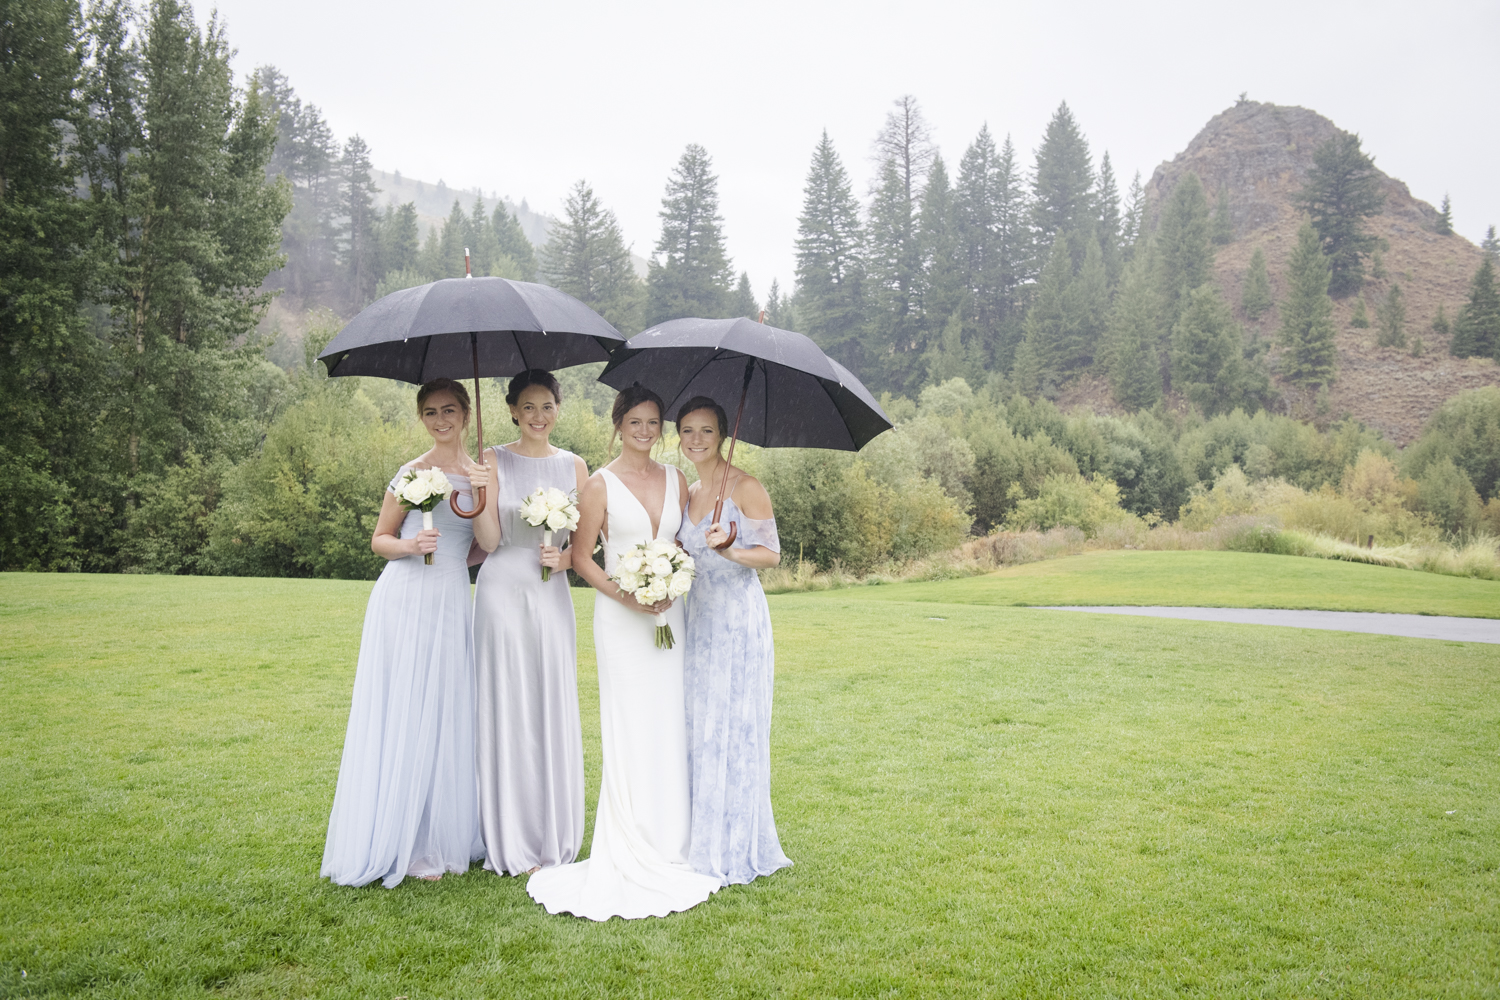 trailcreek_rainy_wedding-028.jpg